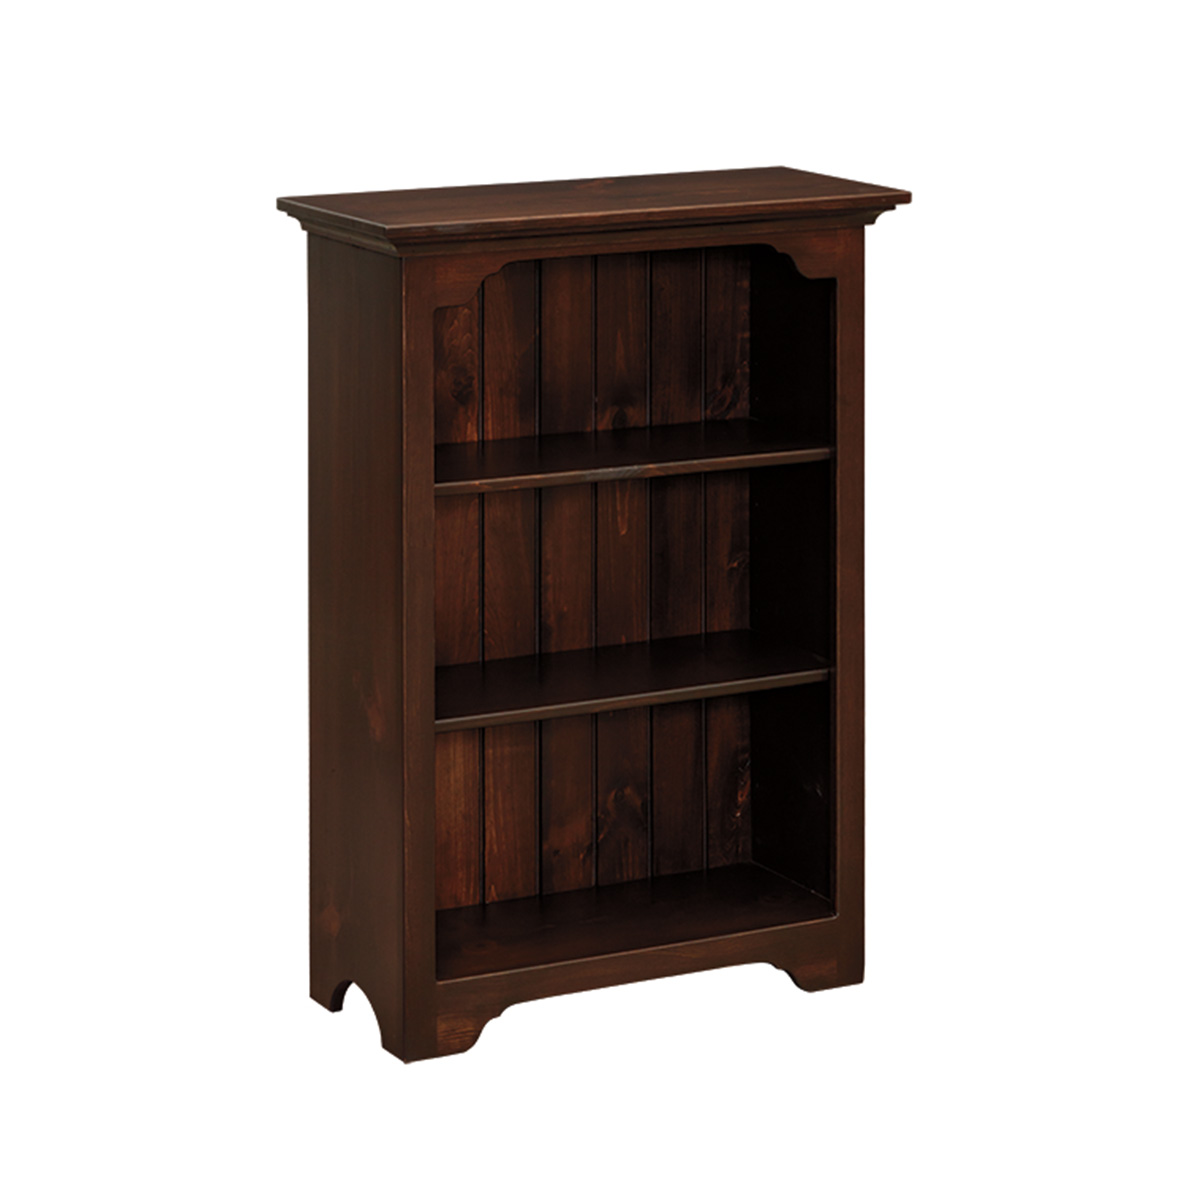 Small Bookcase Peaceful Valley Amish Furniture